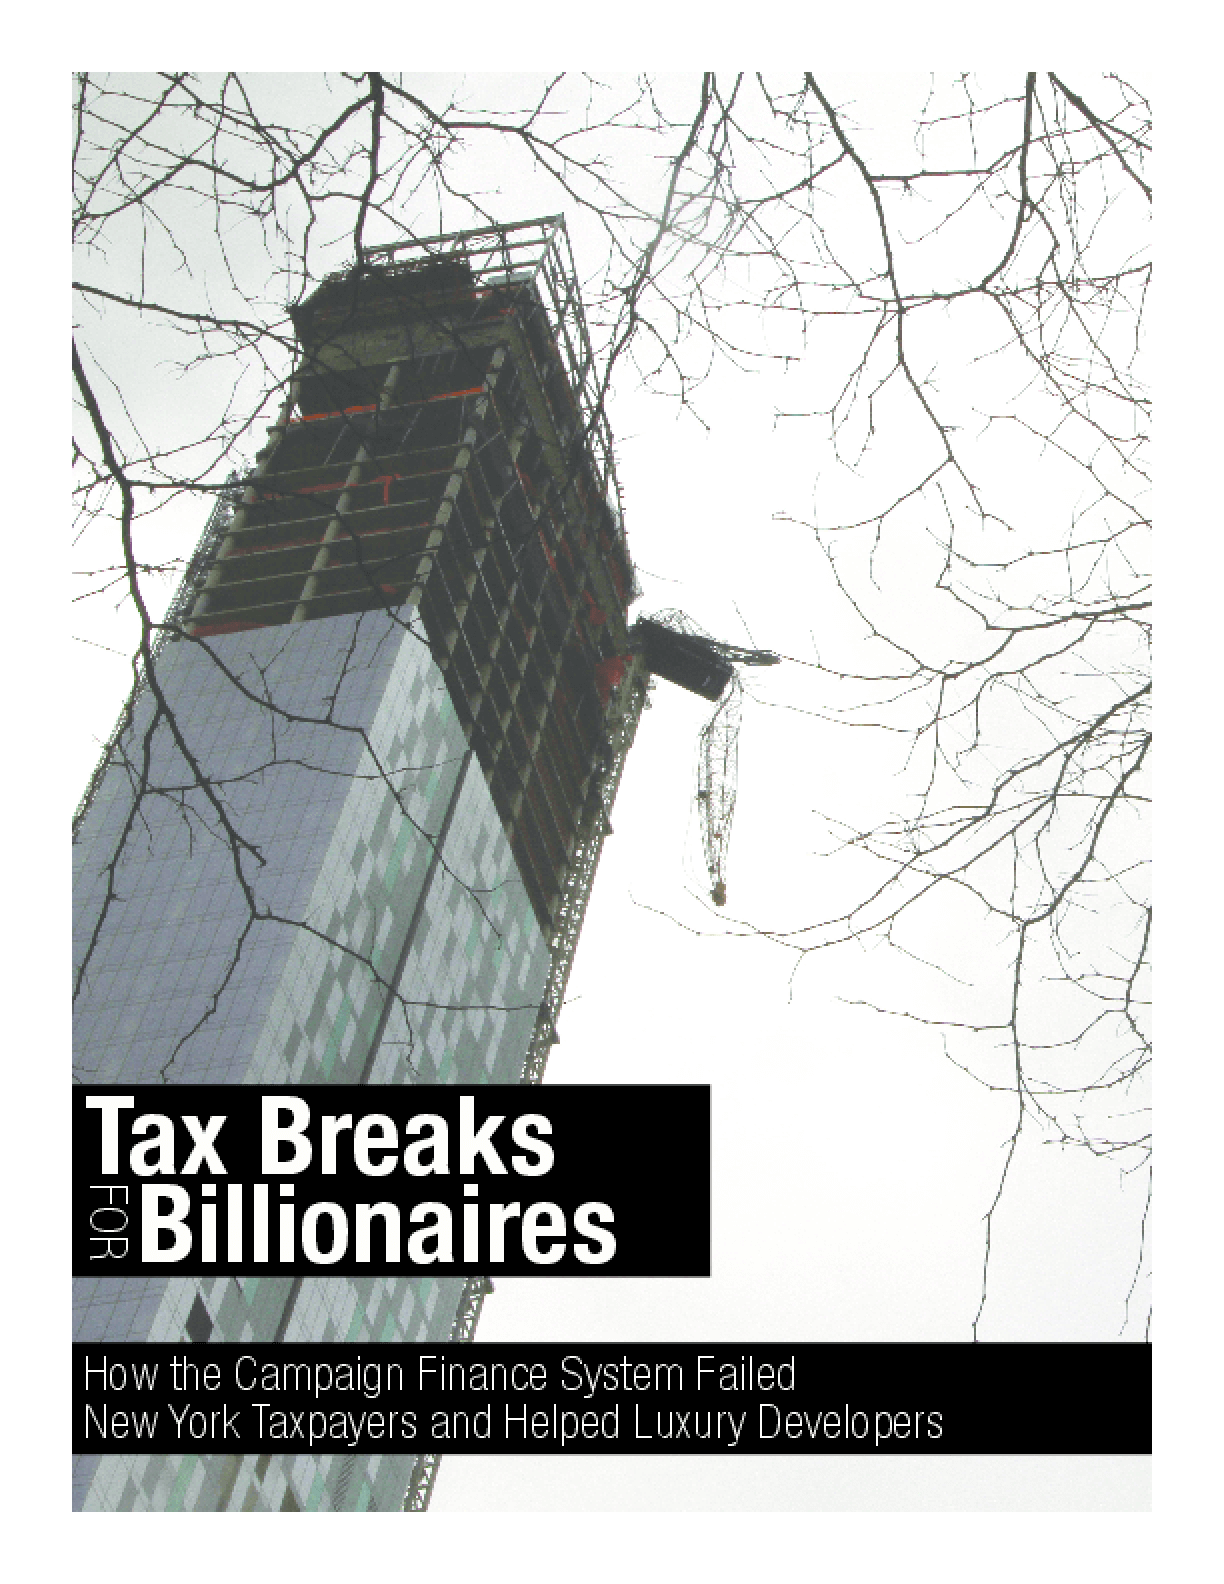 Tax Break for Billionaires: How the Campaign Finance System Failed New York Taxpayers and Helped Luxury Developers